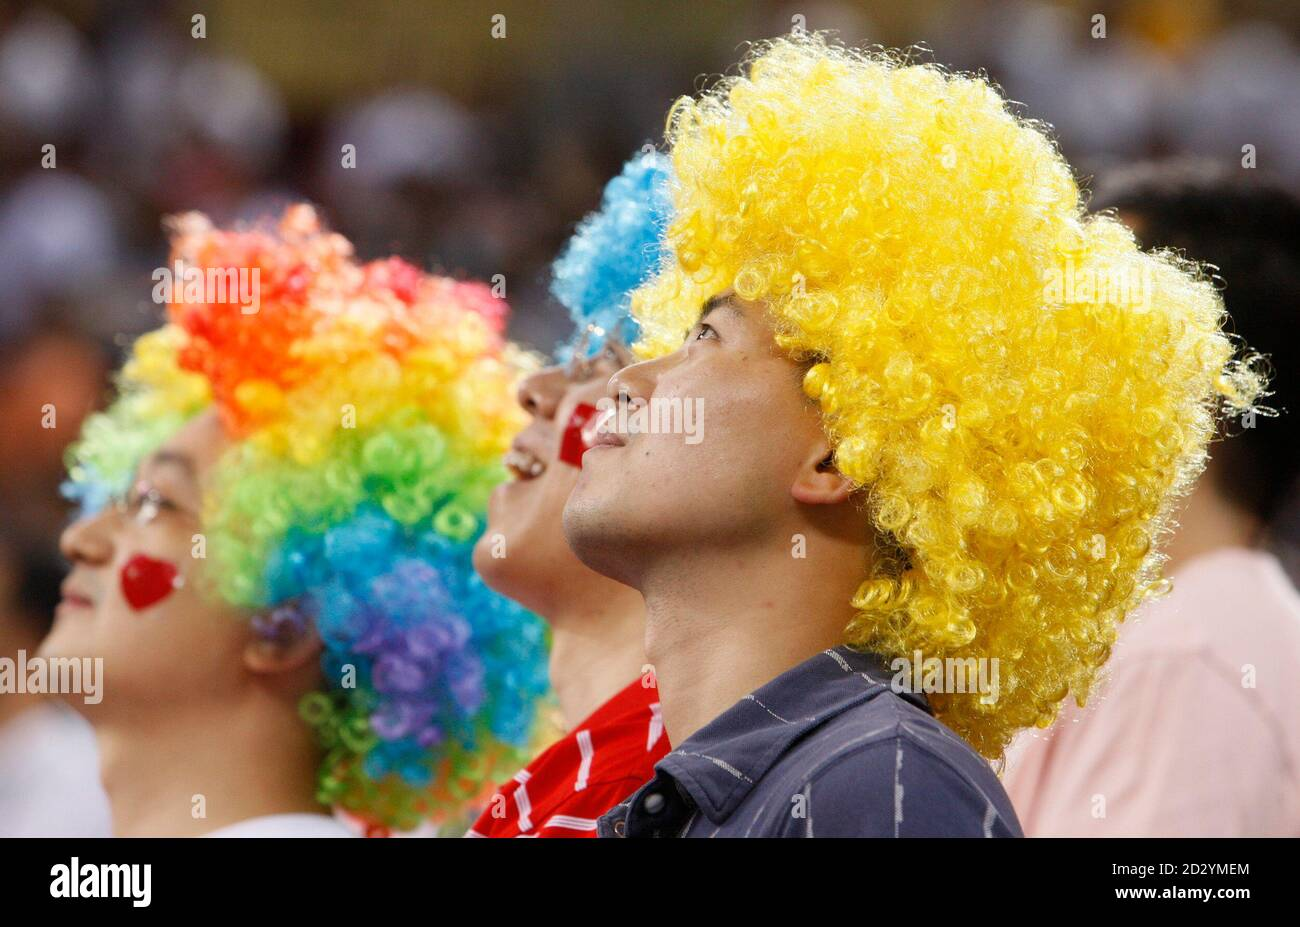 Fans Wear Bright Wigs At The Latvia South Korea Women S Group A Basketball Game During The Beijing 2008 Olympic Games August 17 2008 Reuters Lucy Nicholson China Stock Photo Alamy